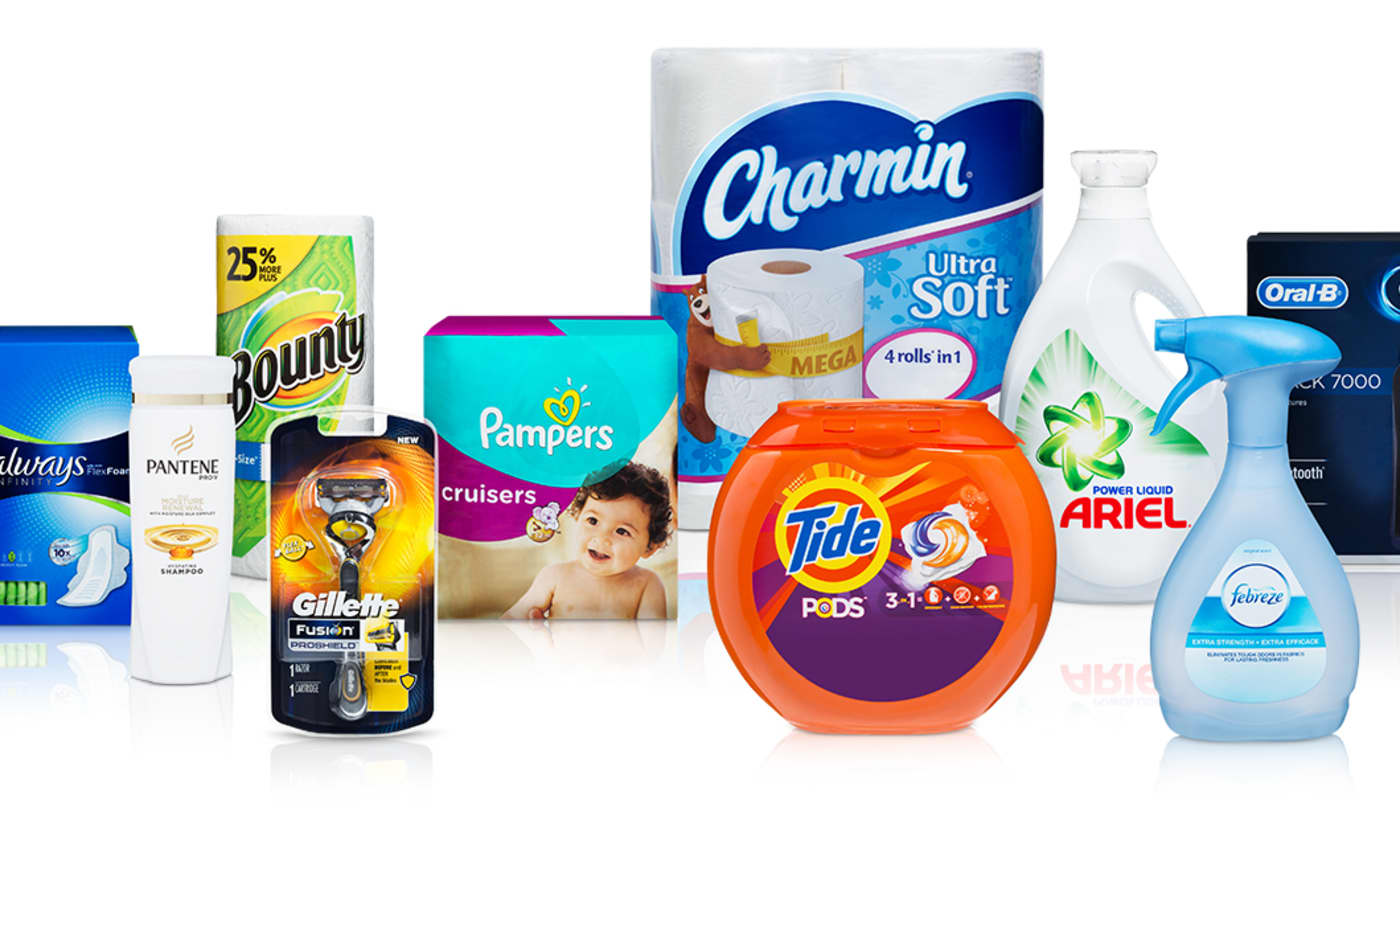 Procter & Gamble saves $750 million on advertising, reduces